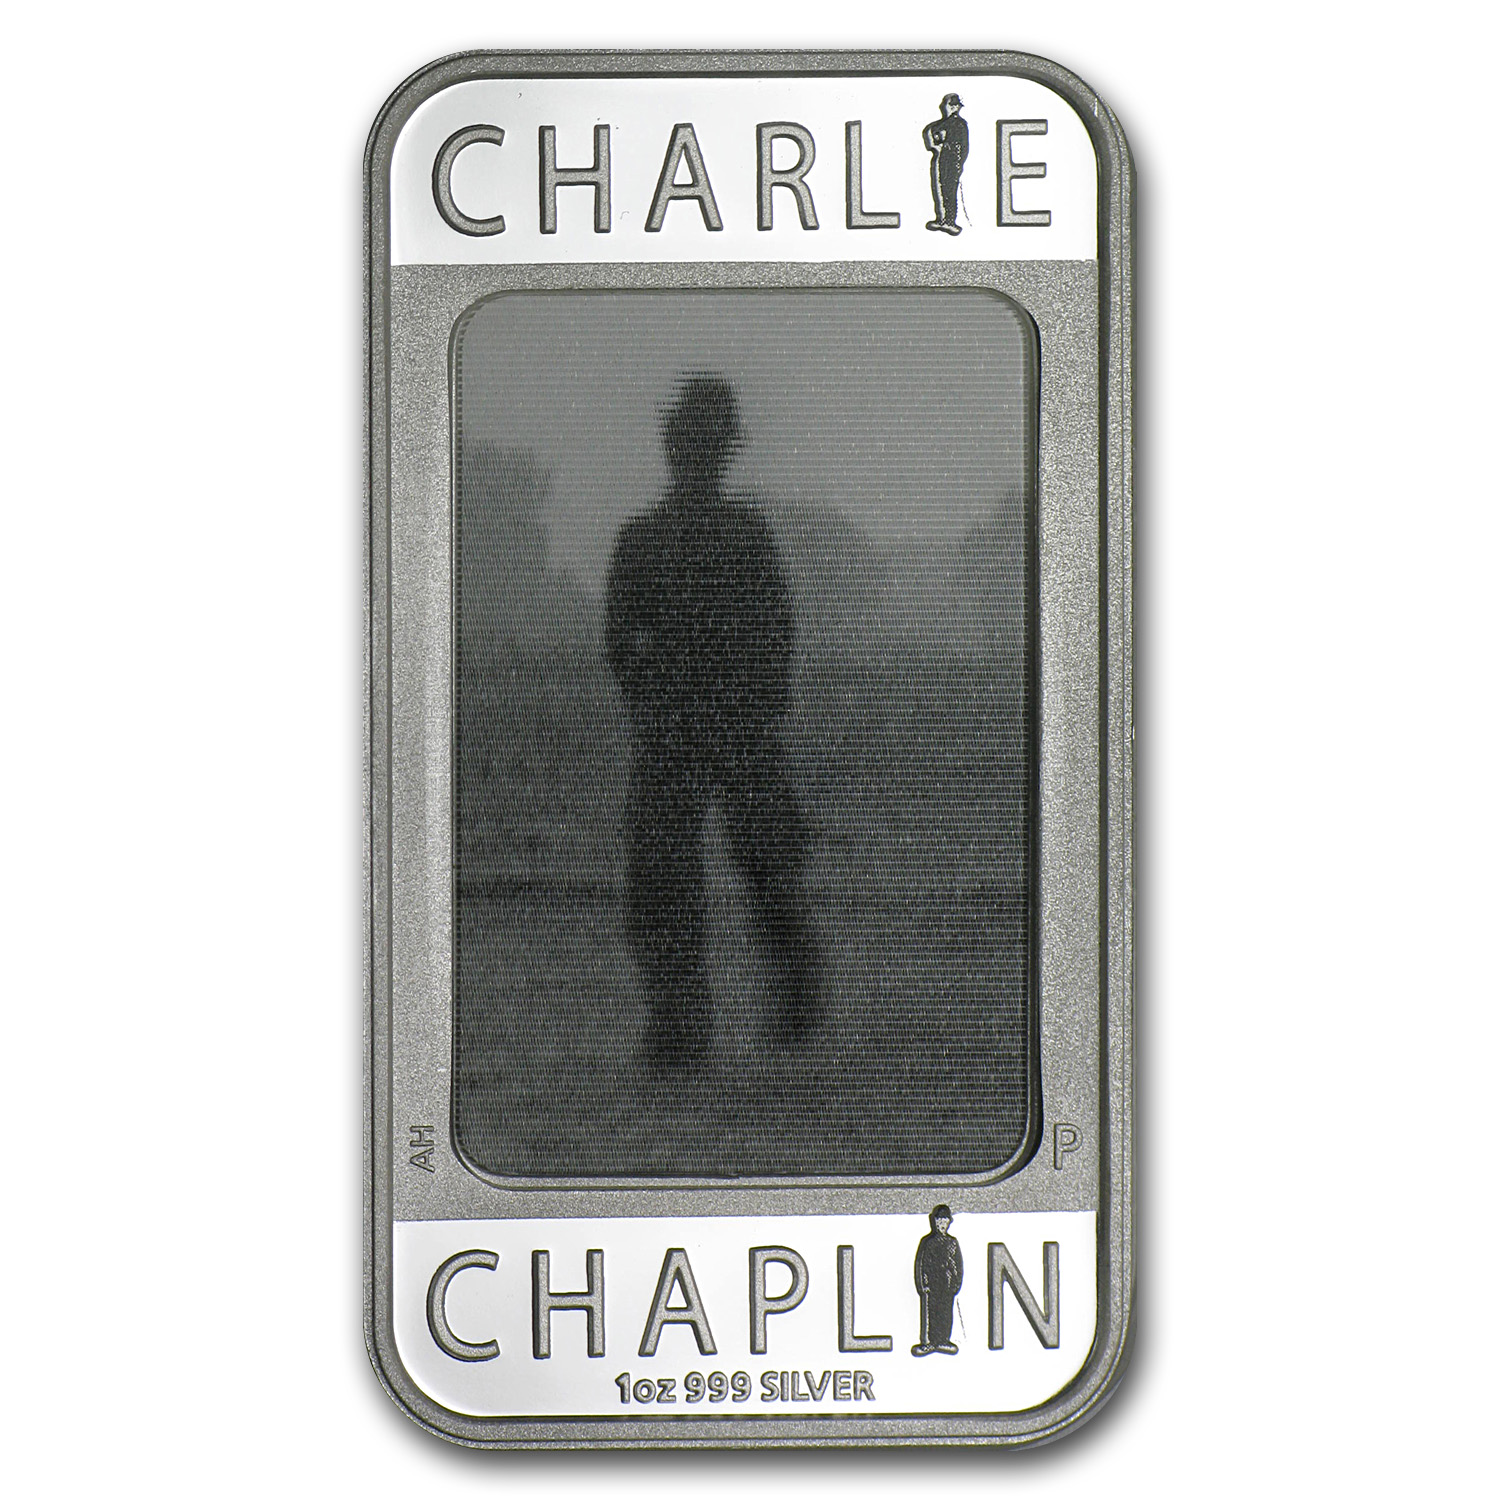 2014 1 oz Silver Bar - Charlie Chaplin (Prf/100 Years Laughter)